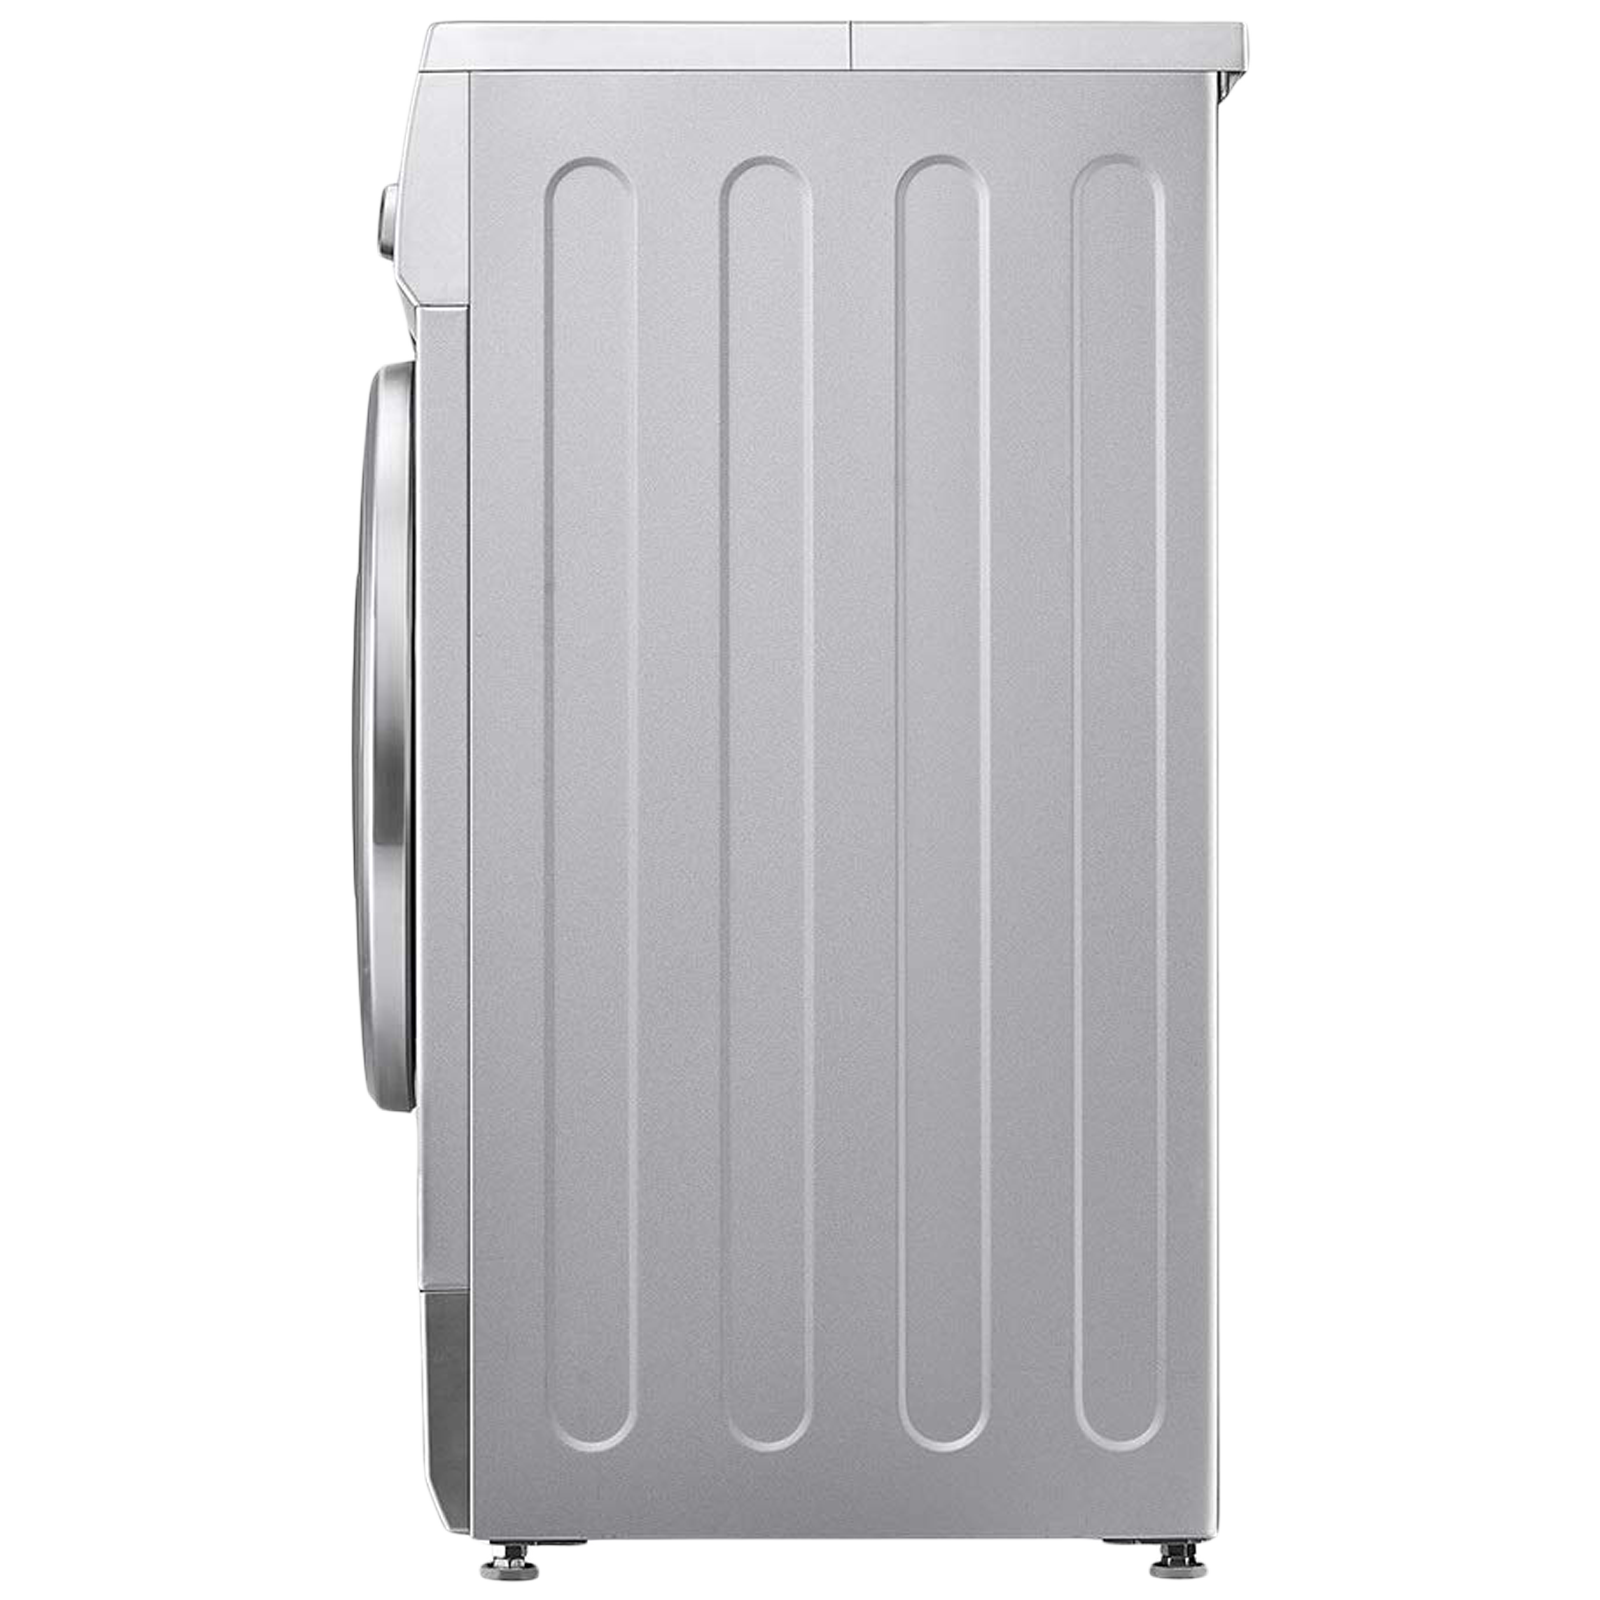 LG 7 kg 5 Star Fully Automatic Front Load Washing Machine (Smart Diagnosis, FHM1207ZDL.ALSQEIL, Luxury Silver) 8